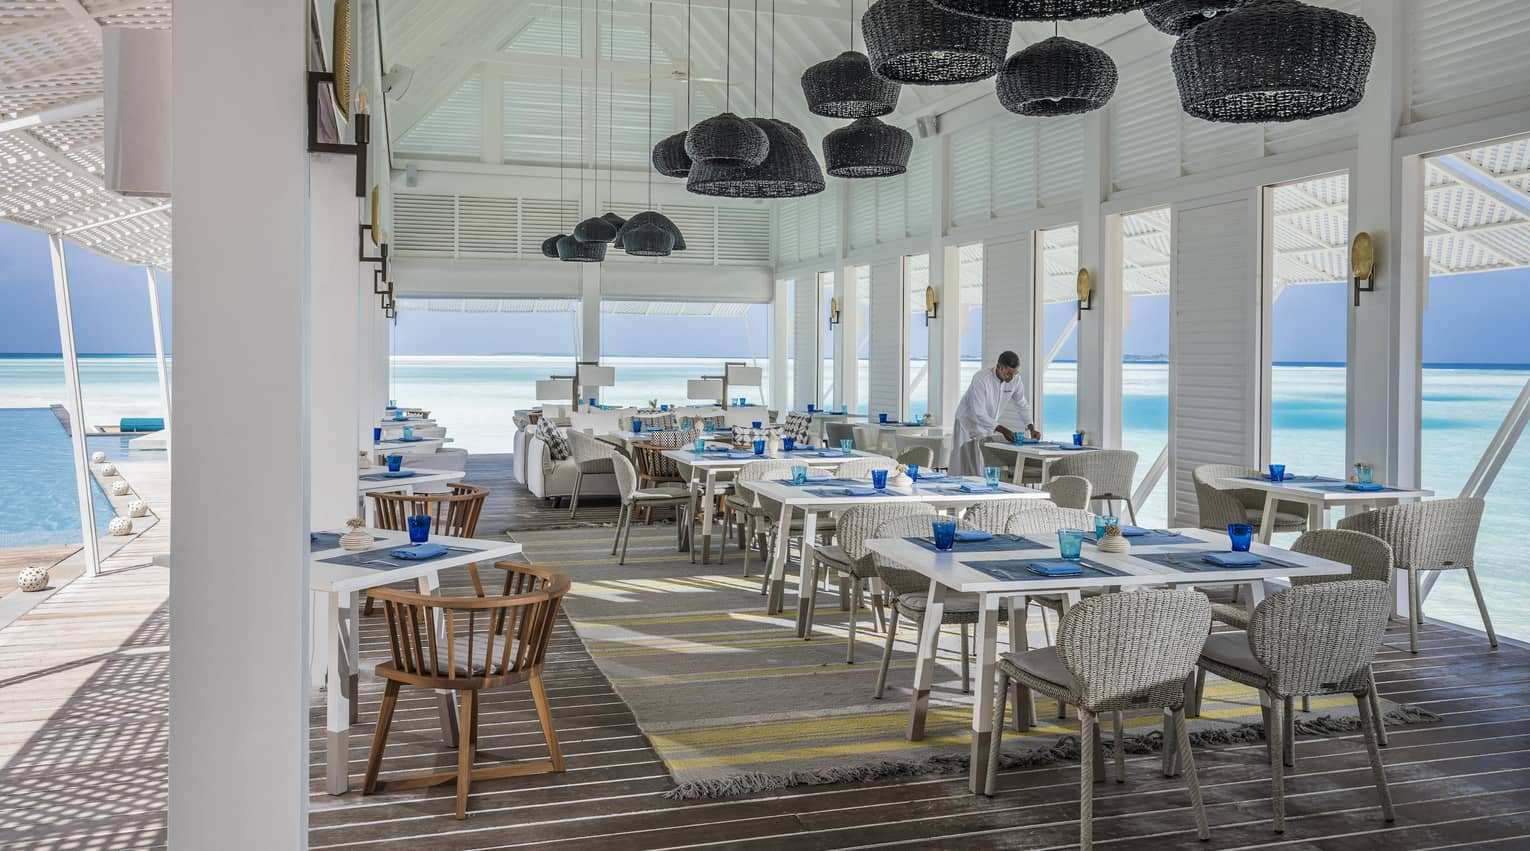 Wicker lanterns hang above clean place-settings adjacent to the ocean at the Blu Beach Club